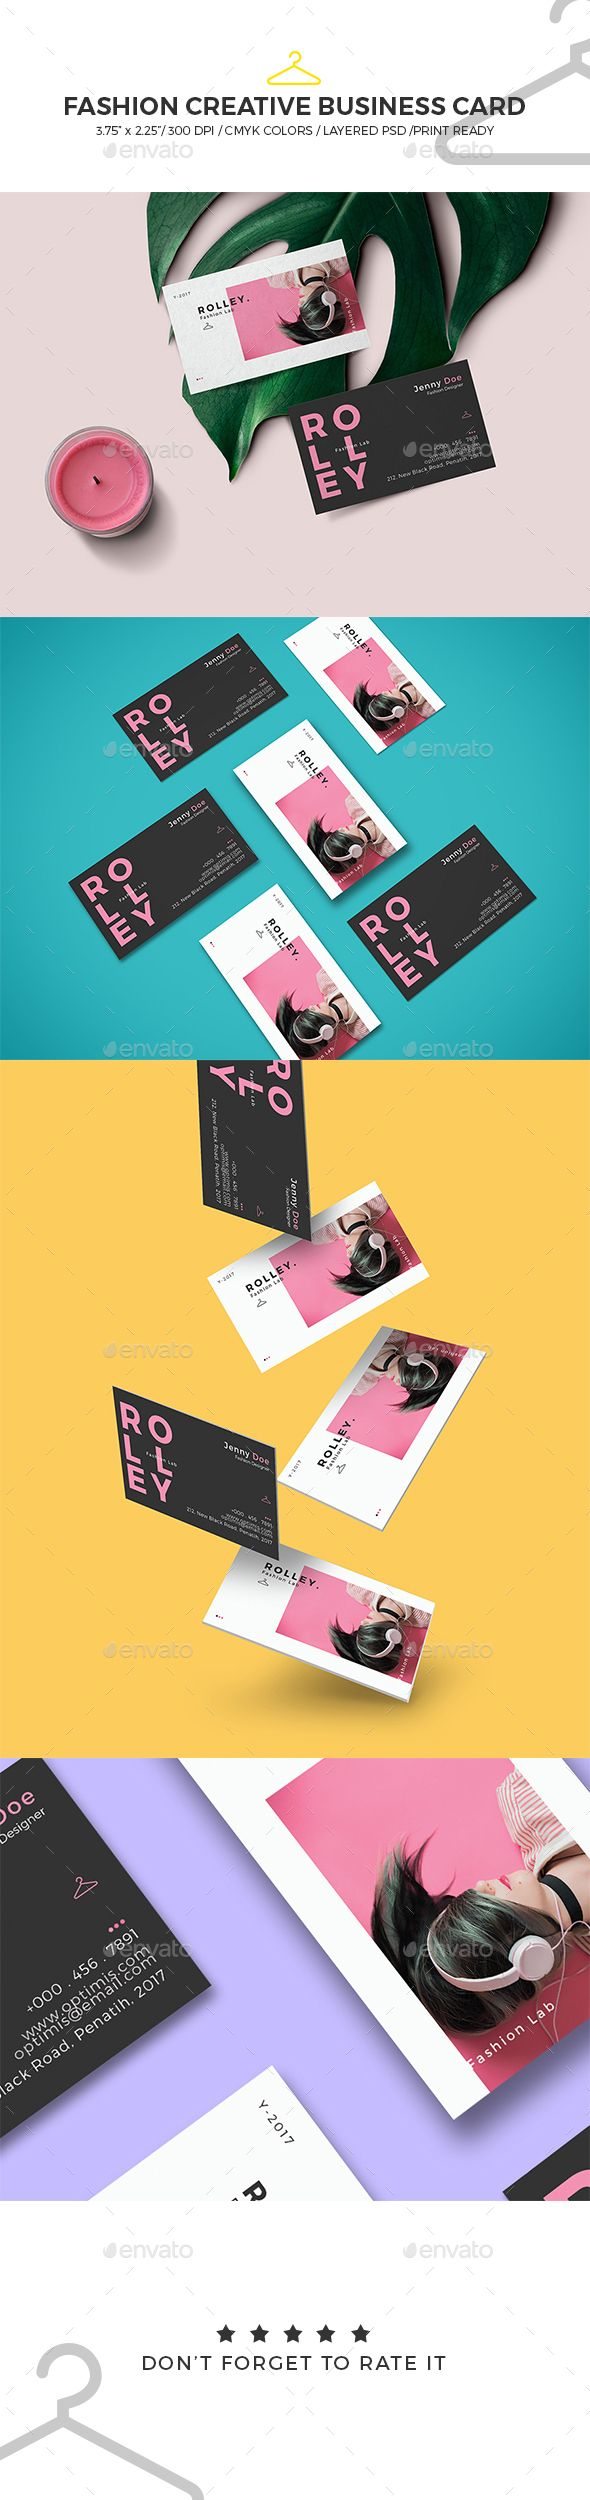 Fashion Creative Business Card